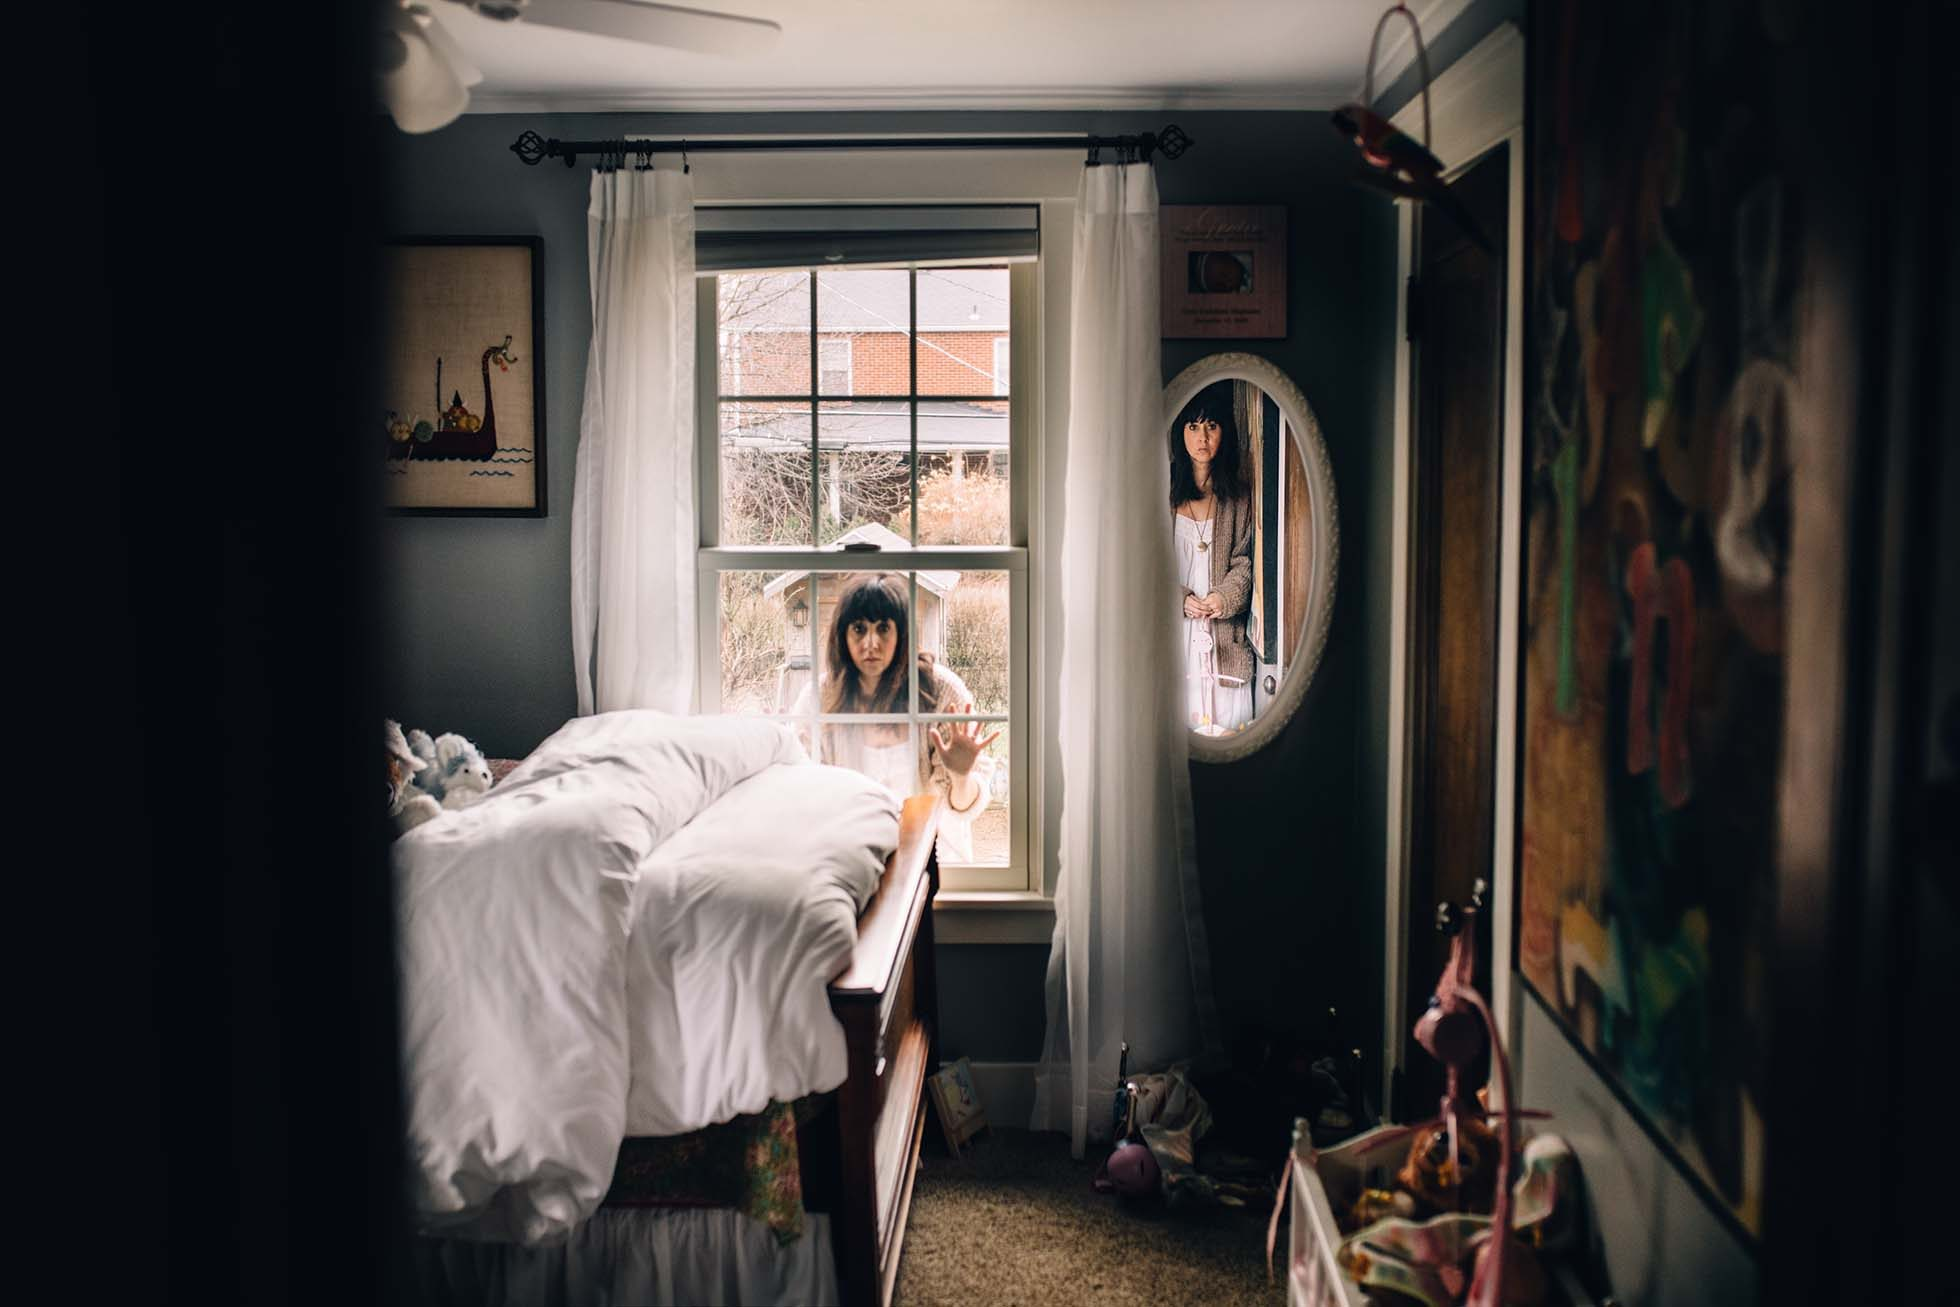 woman looking through the window of her child's room while observing her reflection in the mirror